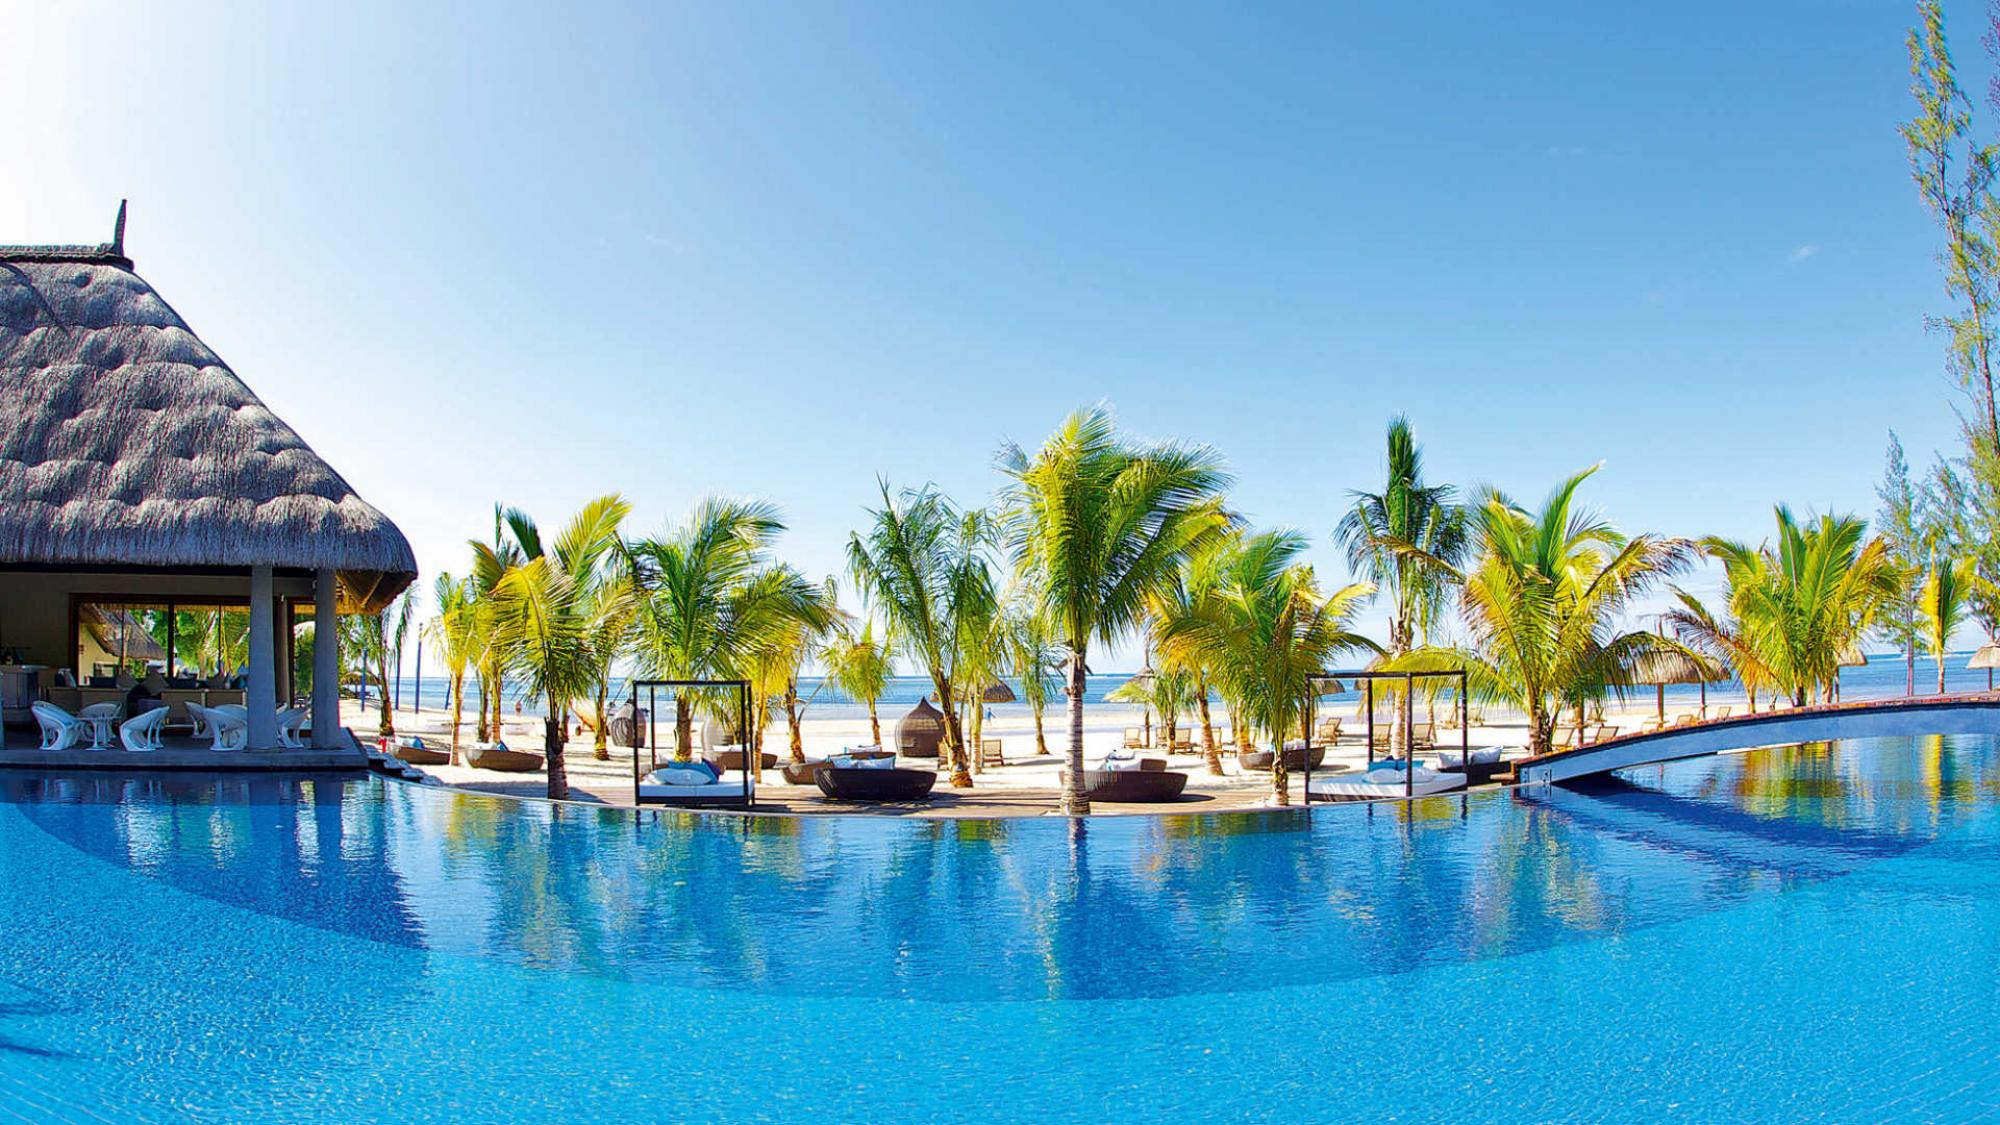 The Heritage Le Telfair Golf  Spa Resort's picturesque main pool situated in impressive Mauritius.